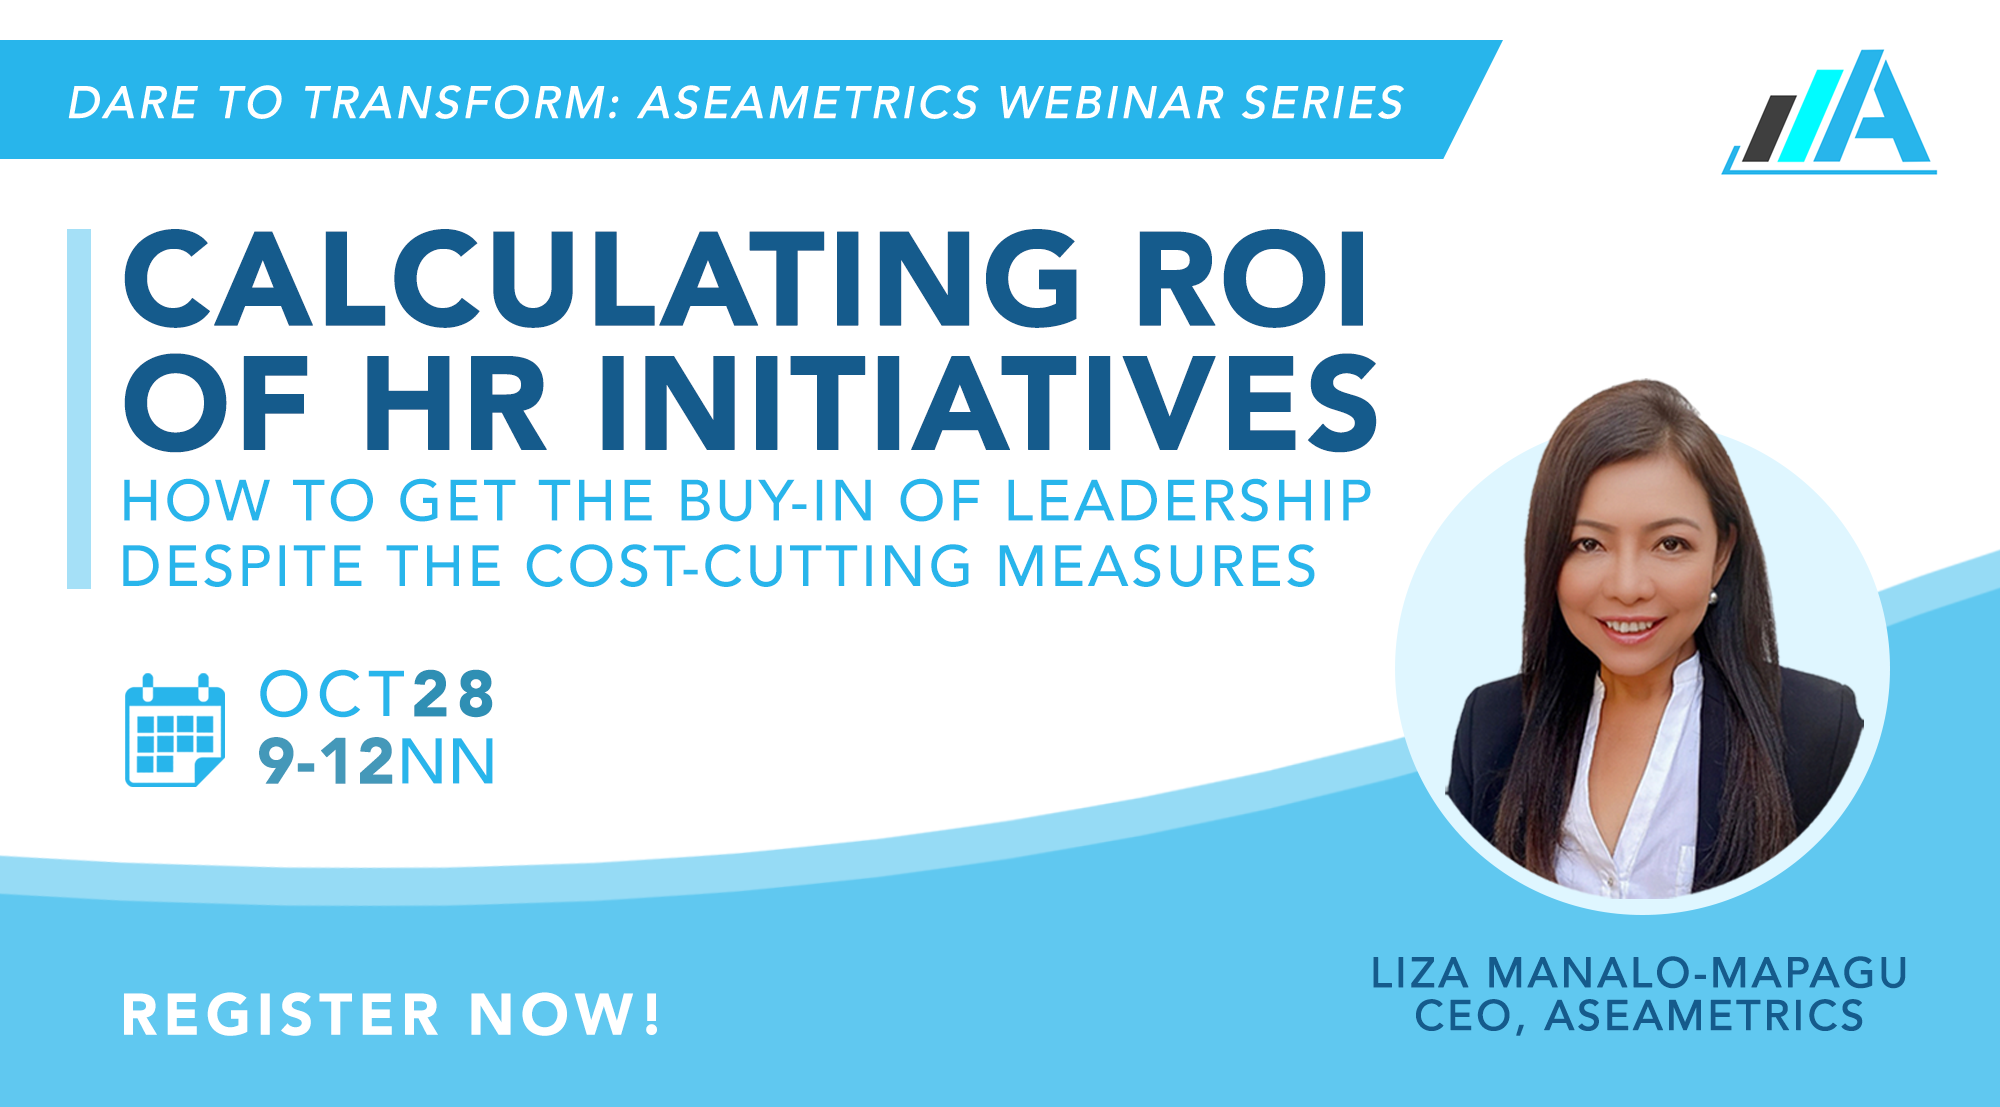 Calculating ROI of HR Initiatives: How to Get the Buy-In of Leadership Despite the Cost-Cutting Measures